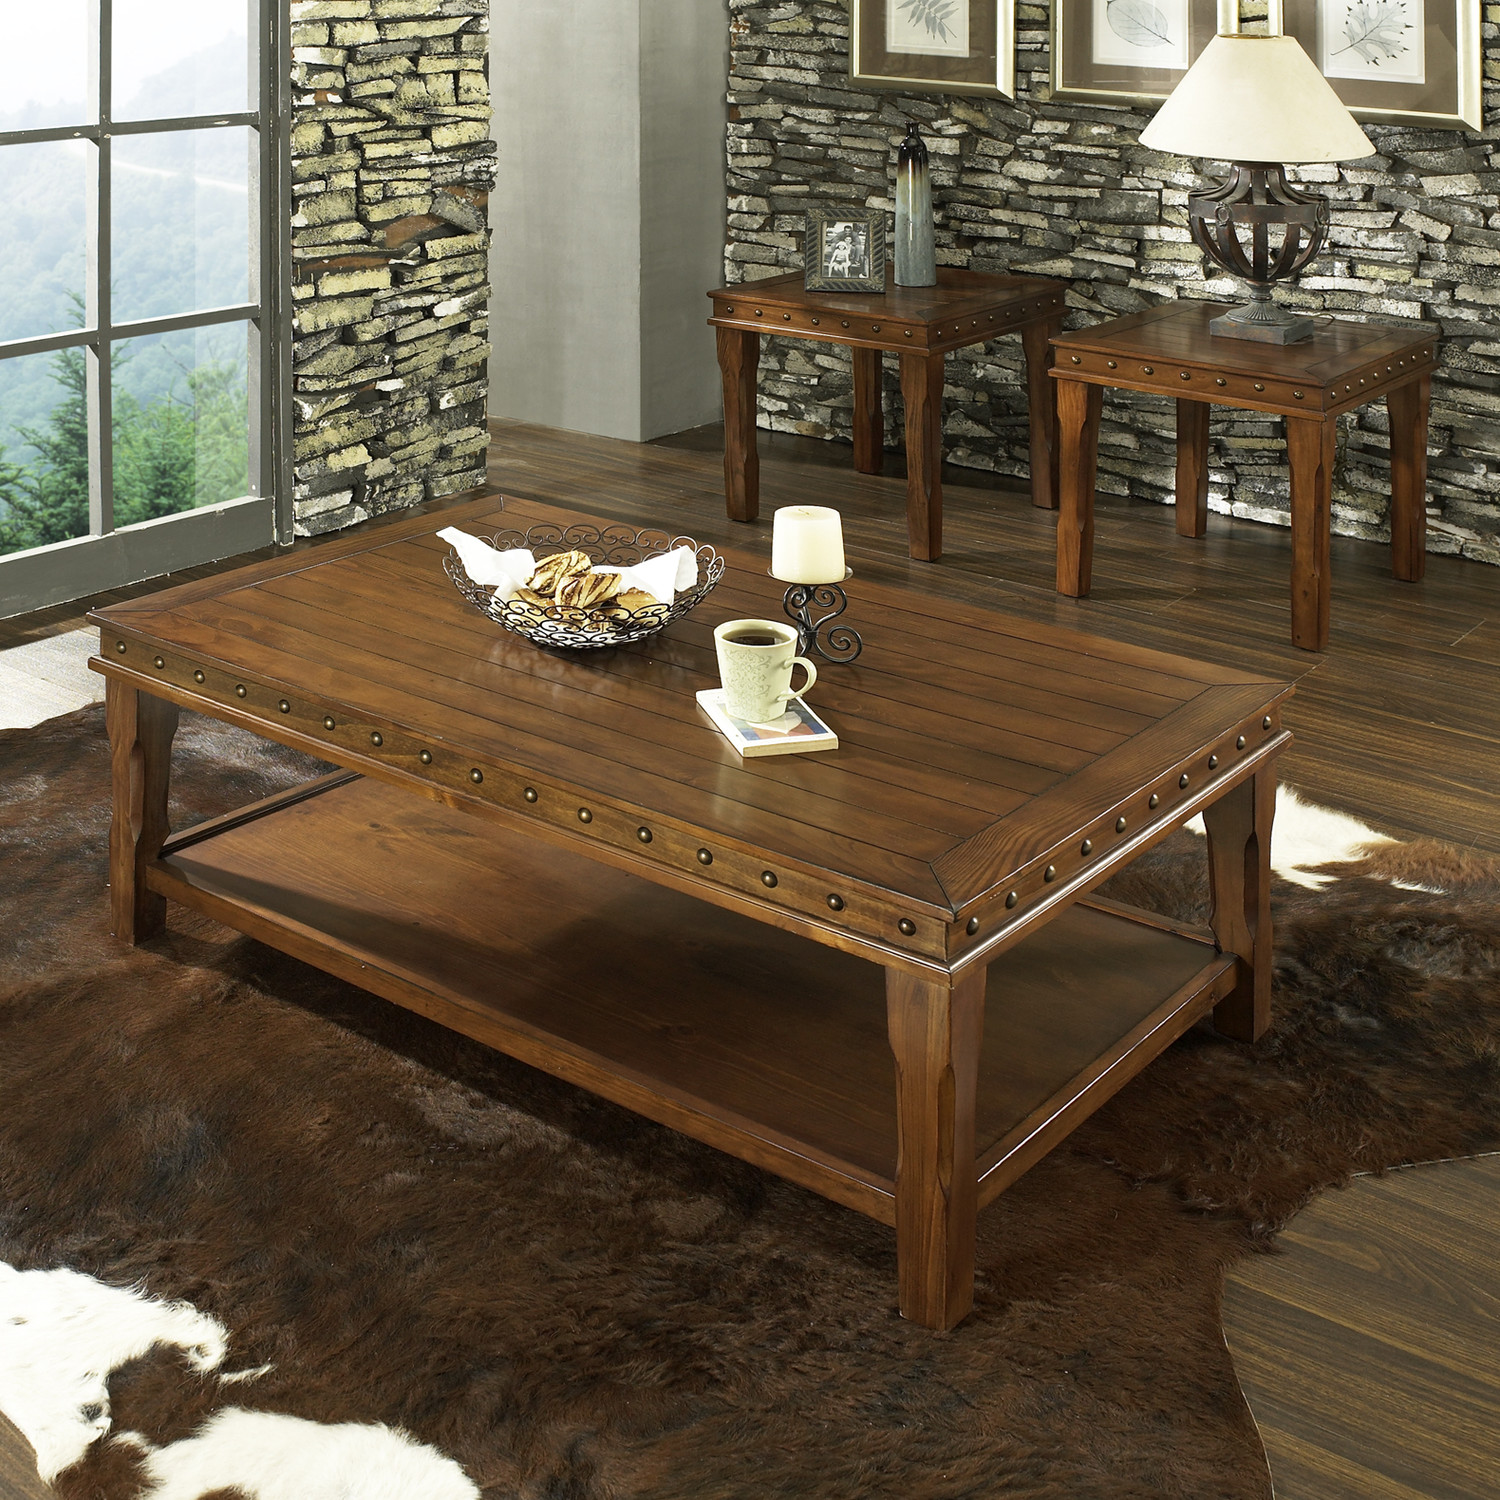 Square Shape Table From Wood Ideas Furnish Steve Silver Furniture Odessa 3 Piece Coffee Table Set (Image 6 of 10)